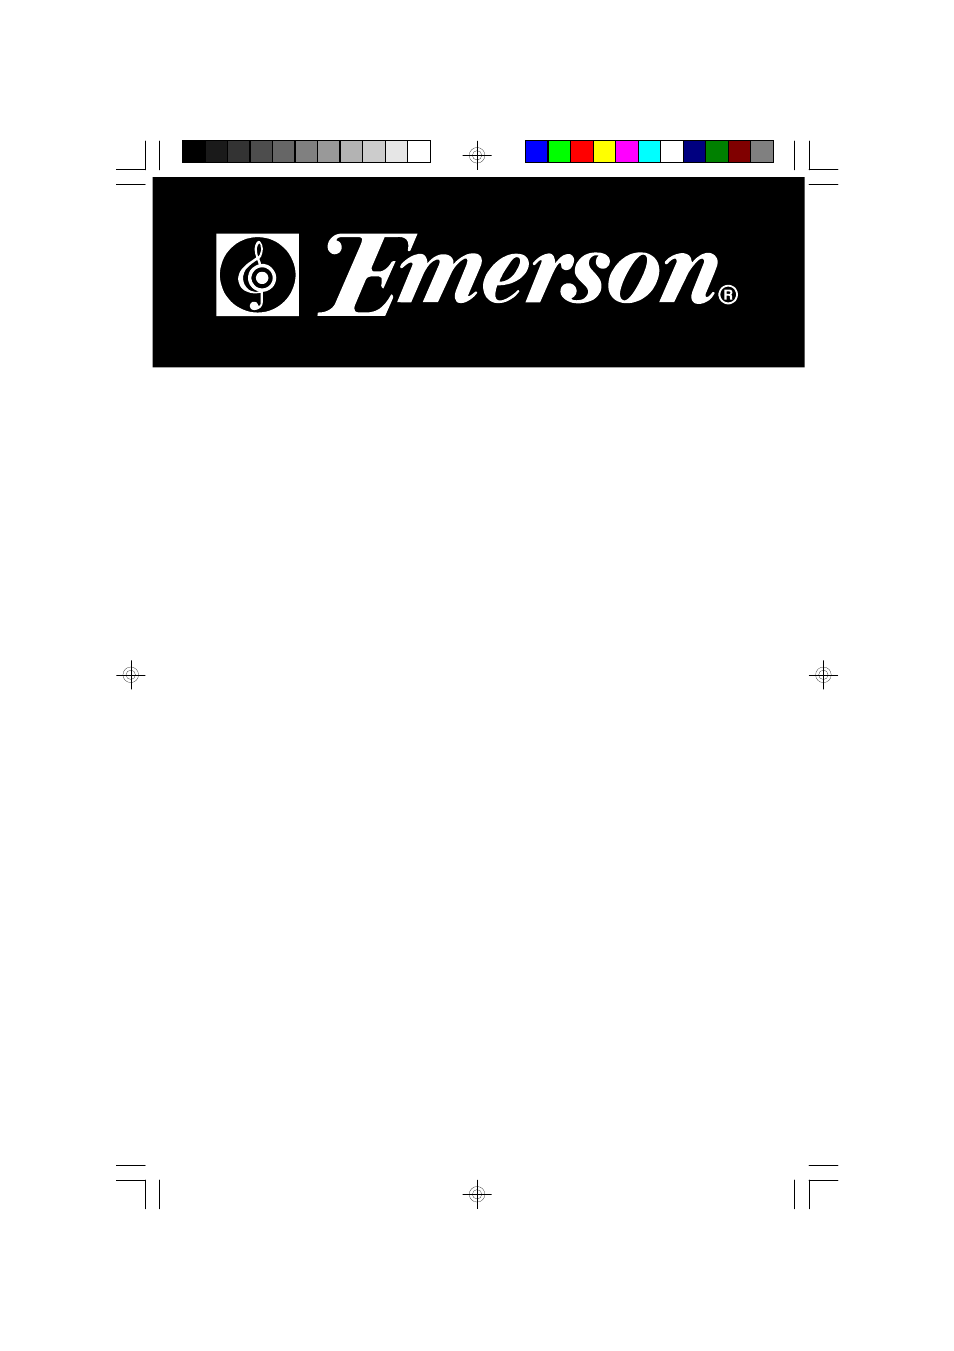 emerson radio ms3106 user manual 39 pages rh manualsdir com Best Portable CD Players emerson dvd cd player manual